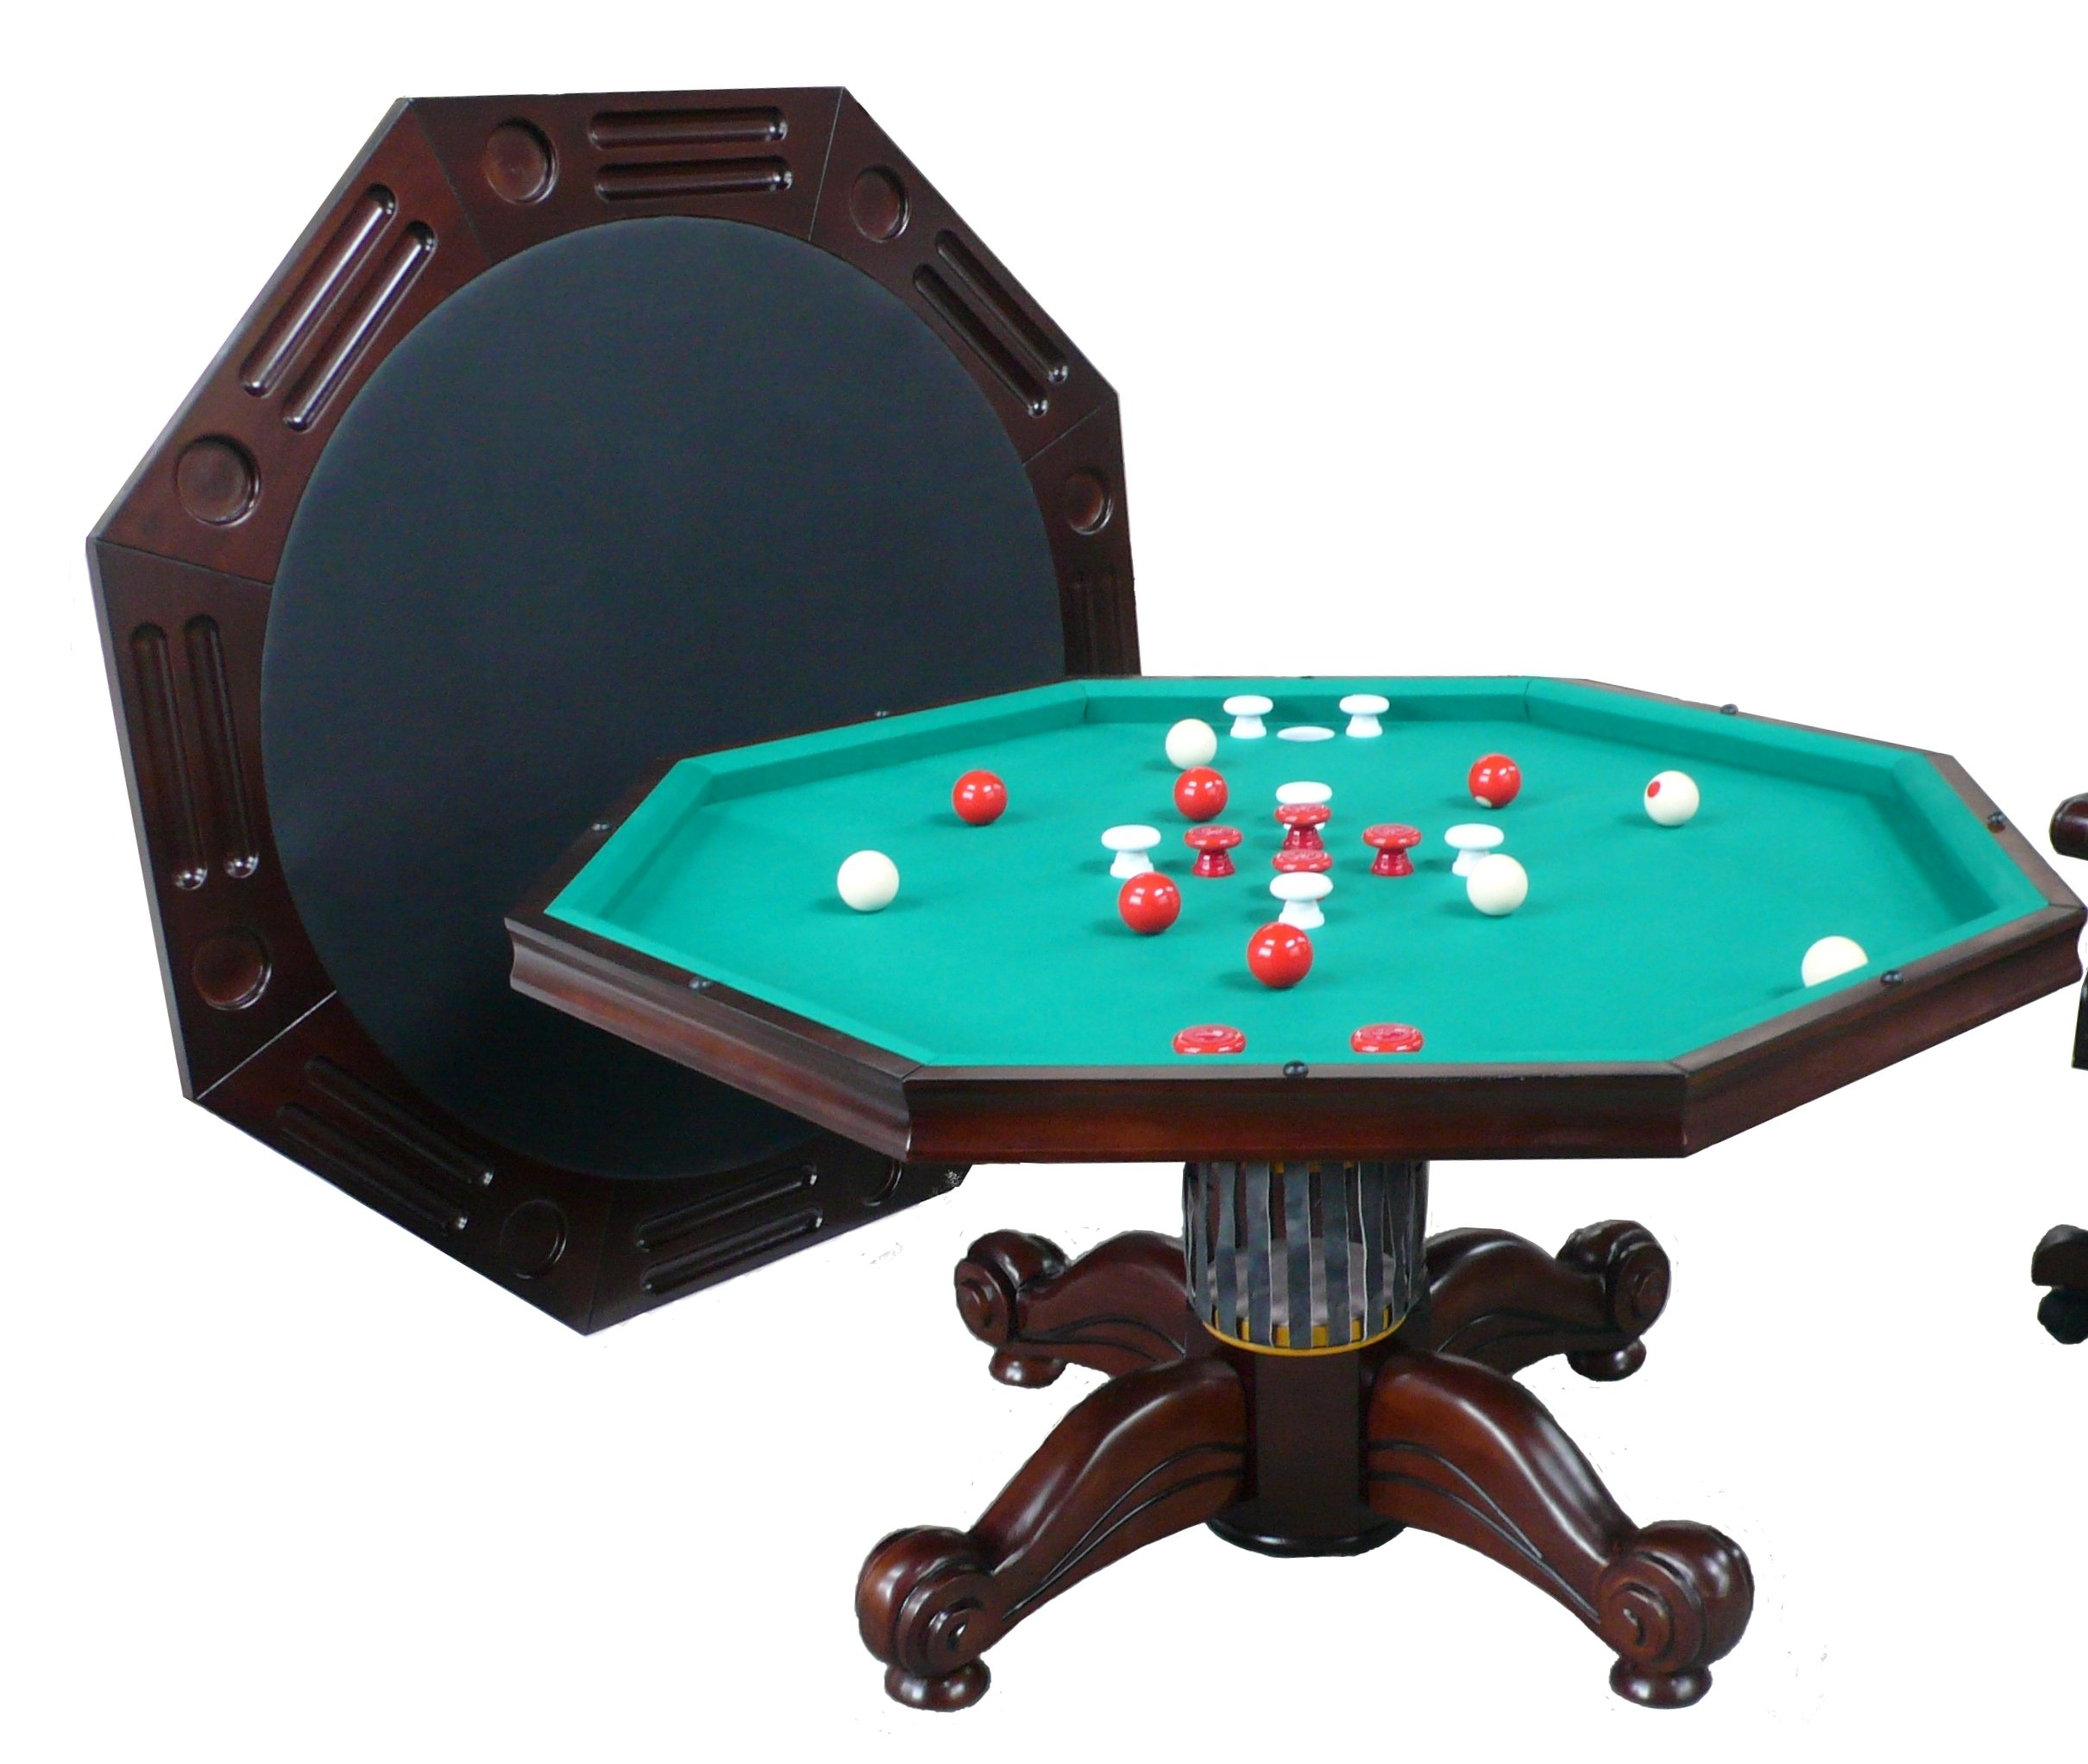 3 in 1 Game Table - Octagon 54'' Bumper Pool, Poker & Dining in Dark Walnut By Berner Billiards